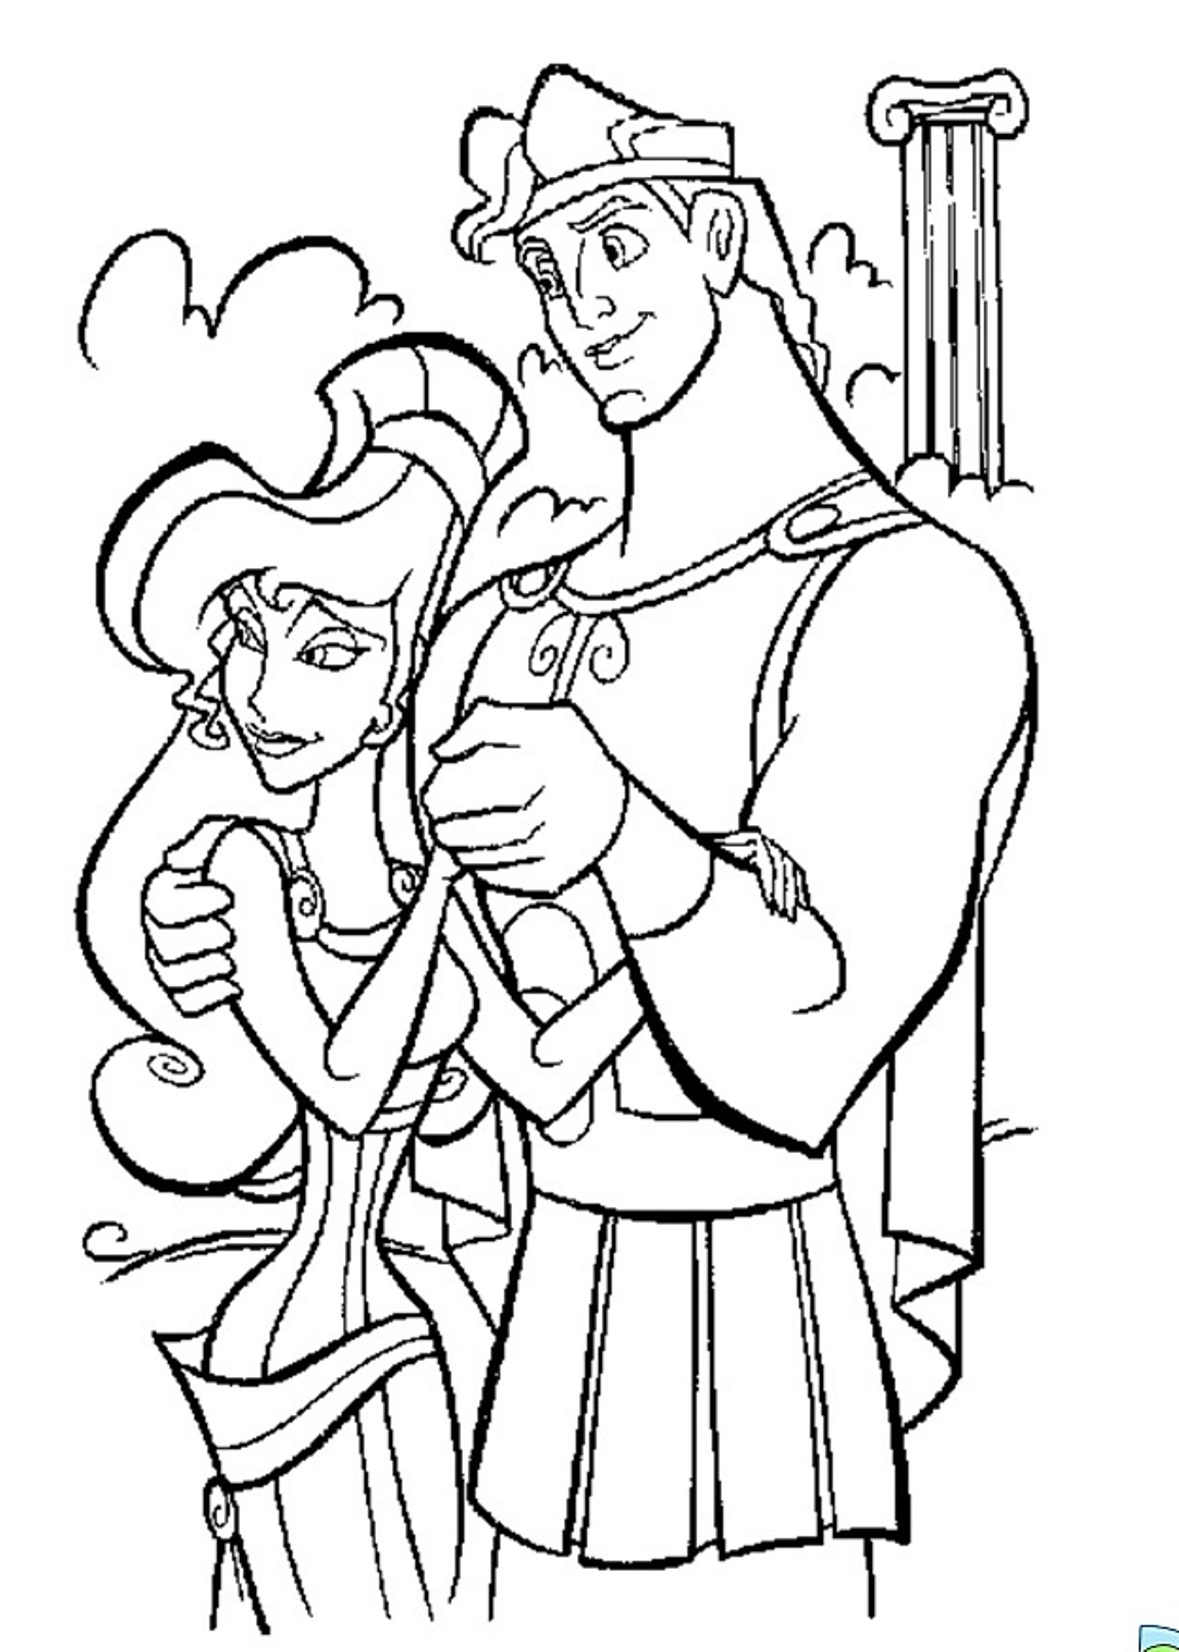 Printable Hercules Coloring Pages Coloring Me Hercules Coloring Pages